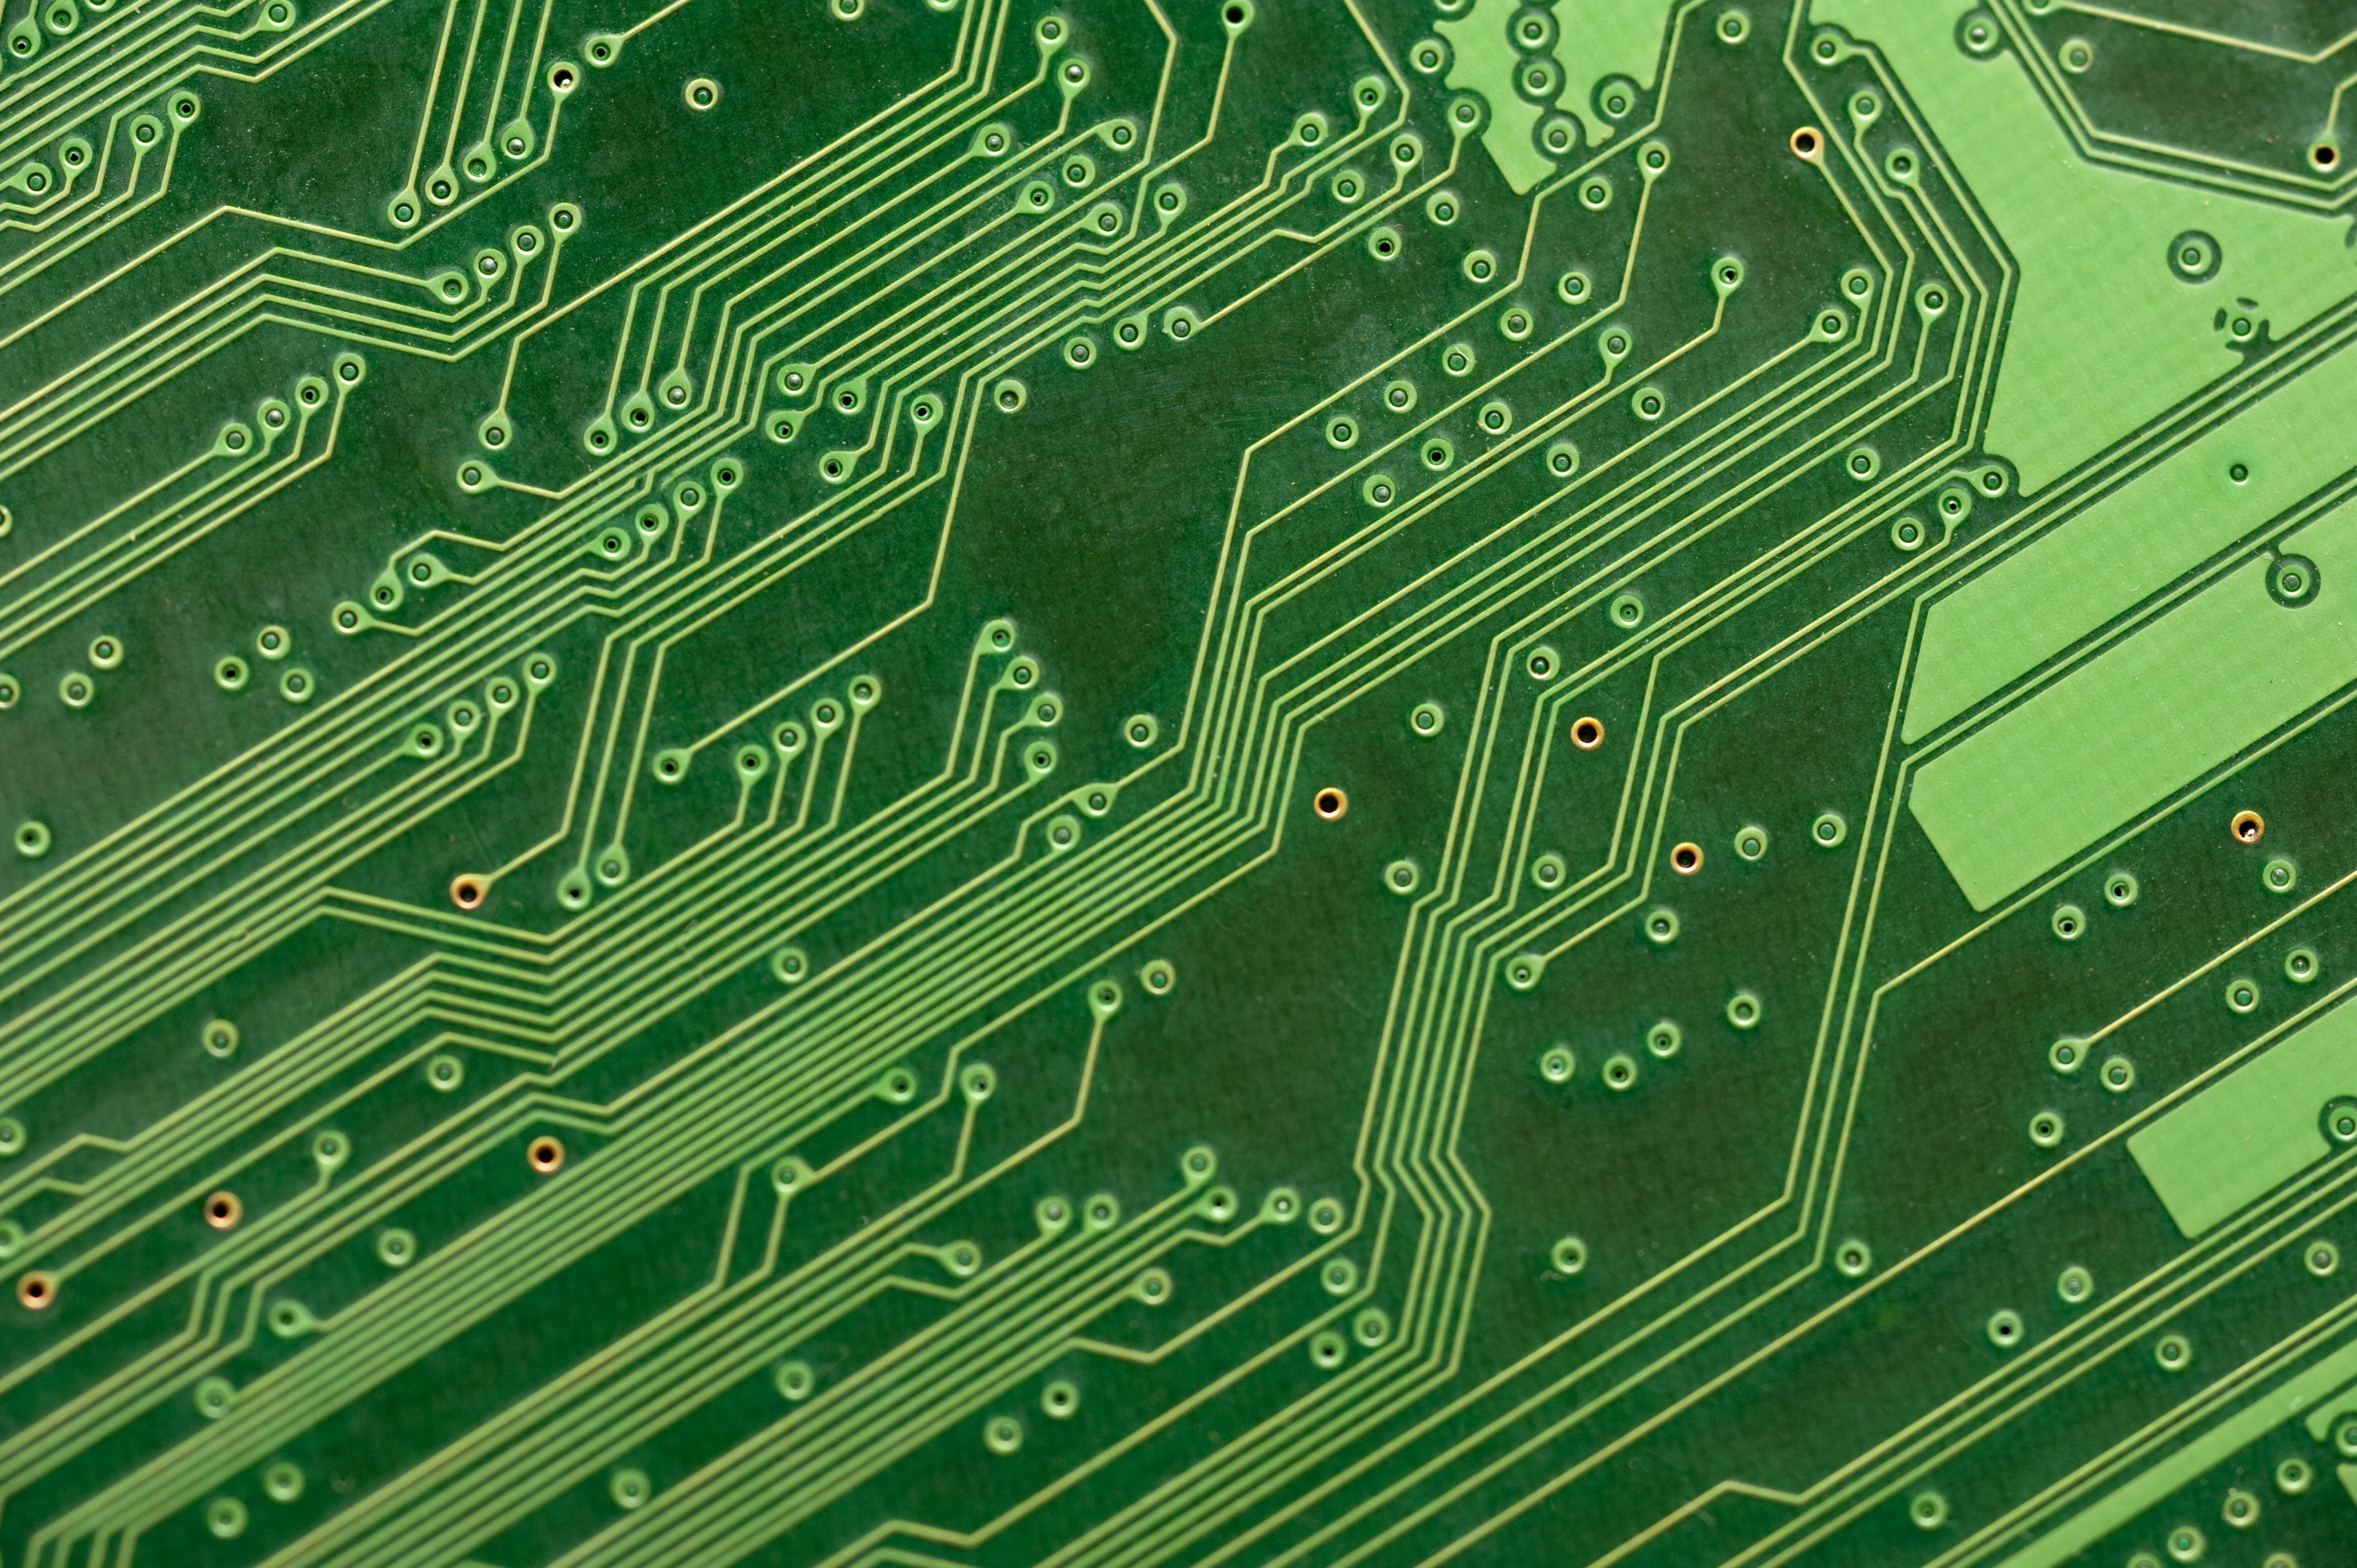 electronic circuits backgrounds and textures Cr103com 4256x2832